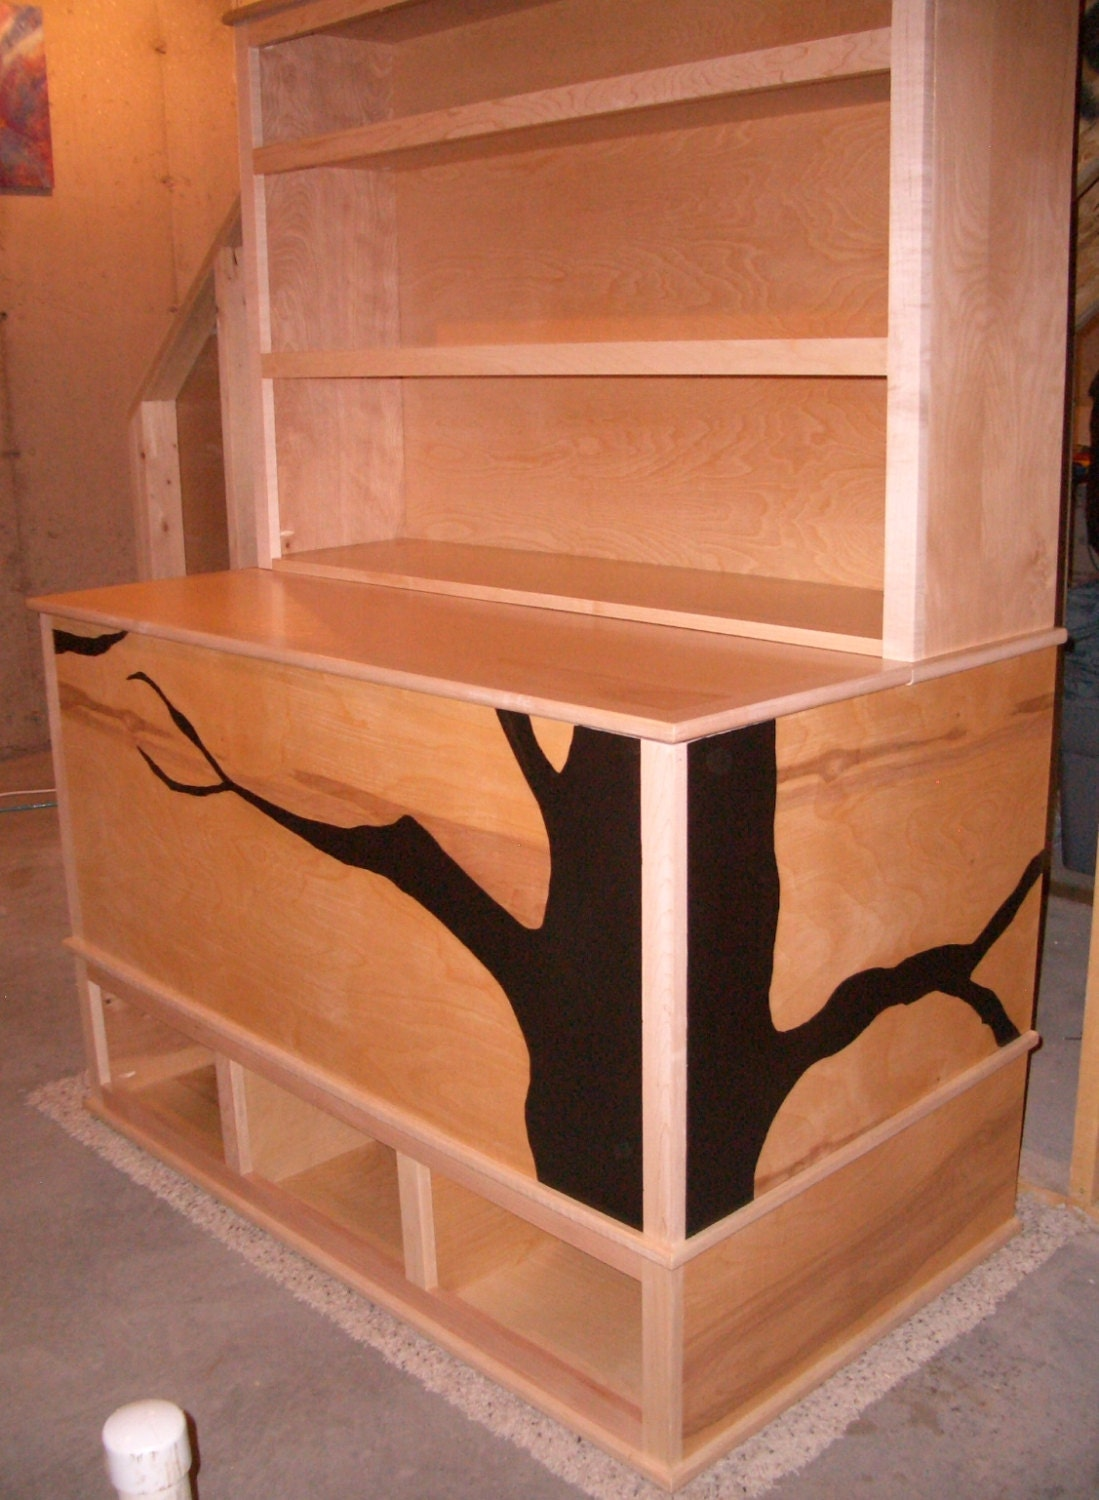 Woodworking Plans Toy Box with Cubbies and by PRATTinnovation